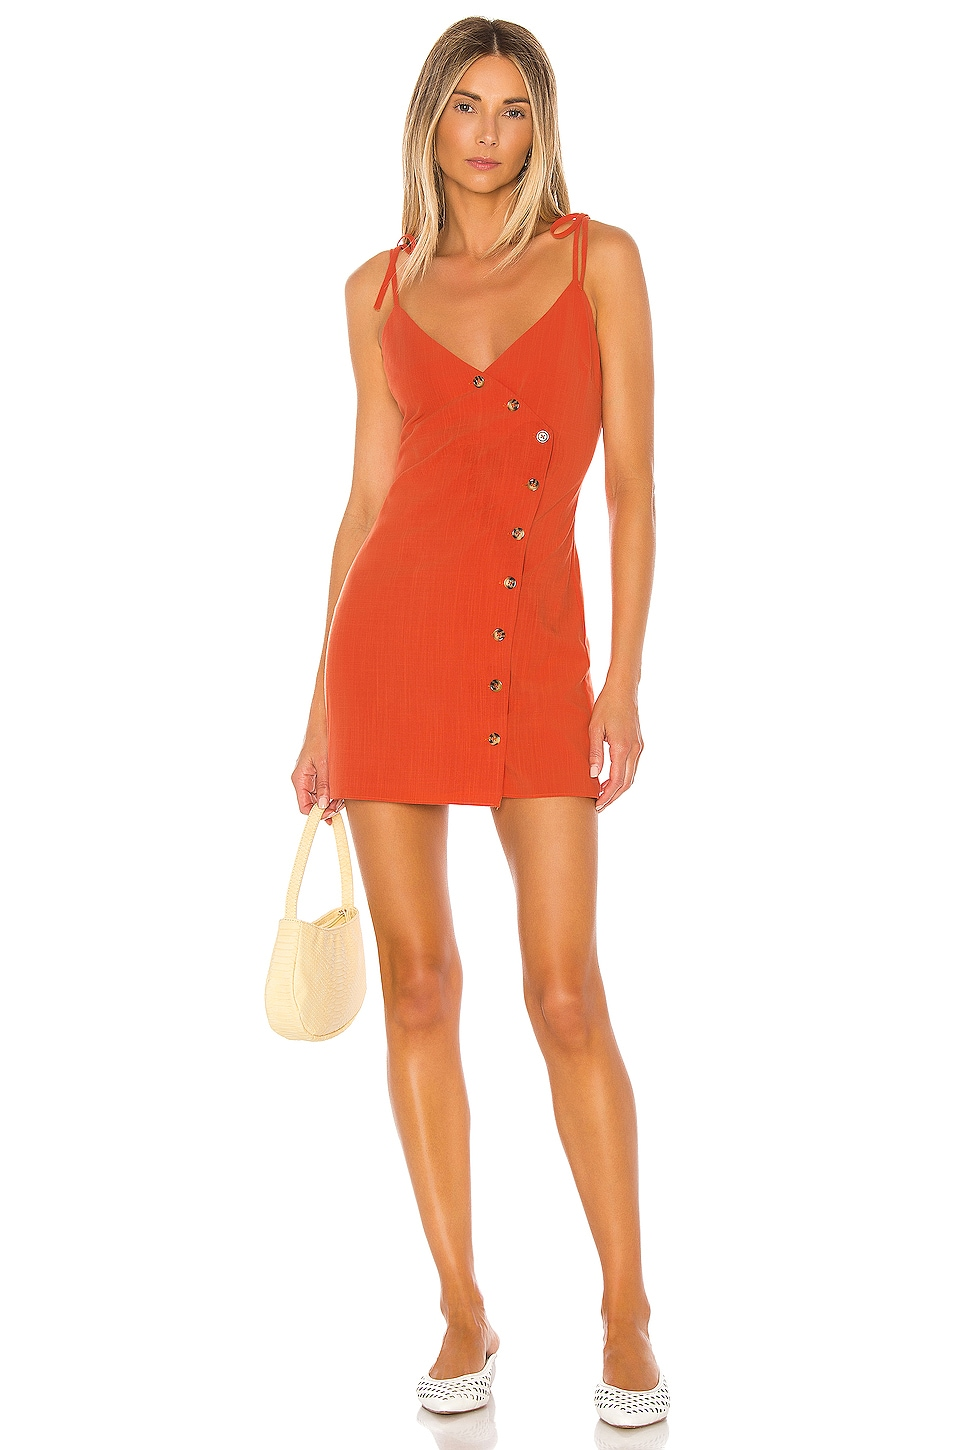 Privacy Please Abrielle Mini Dress in Red Orange